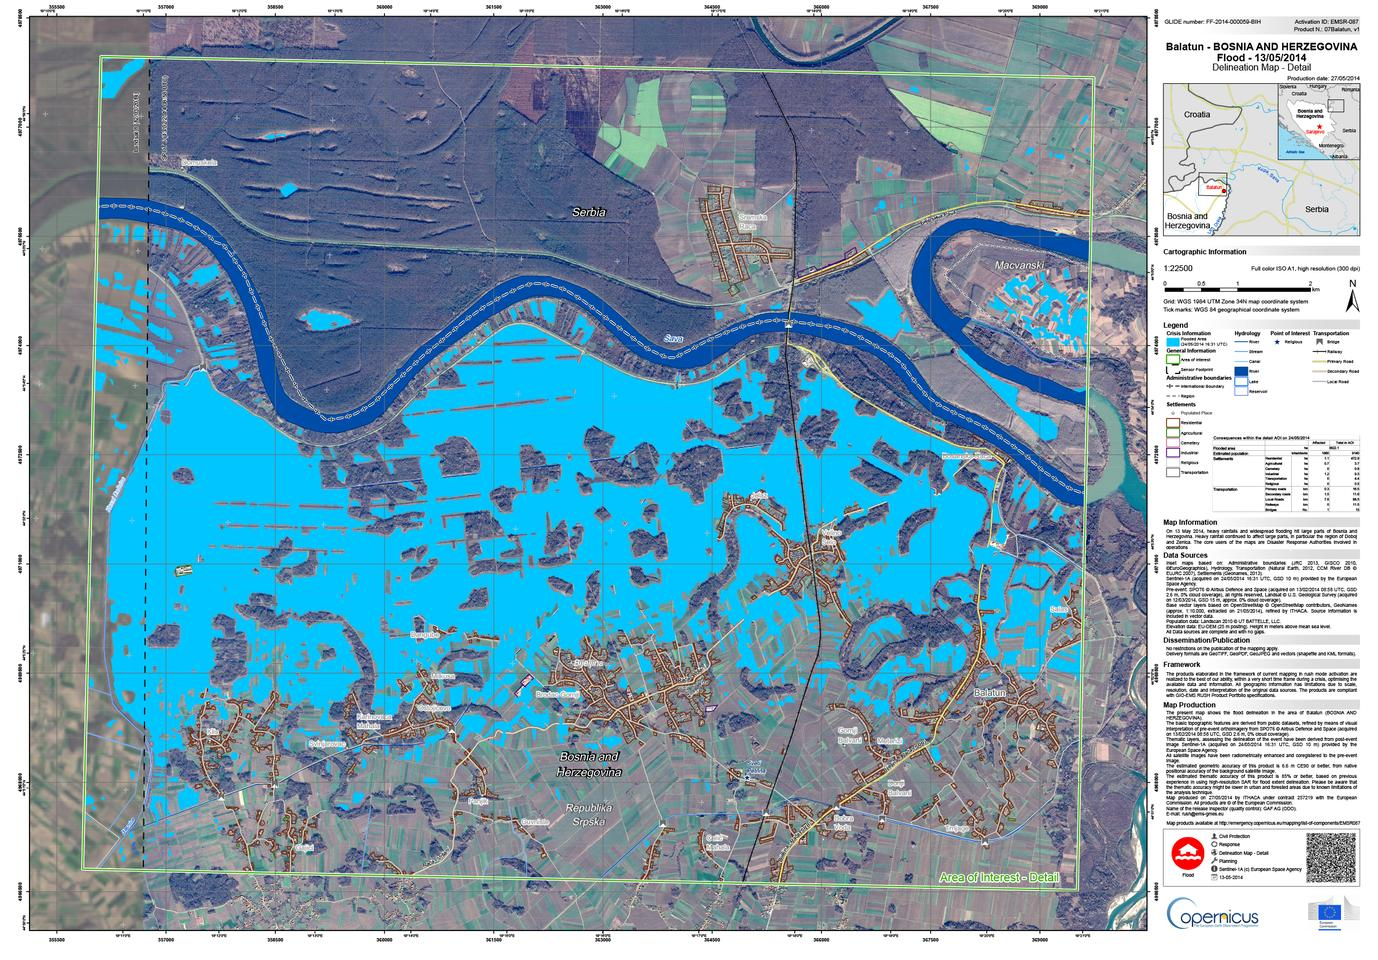 Flood map of the village of Balatun in northeastern Bosnia and Herzegovina, created with data from Sentinel-1A (Image: ESA/European Commission)